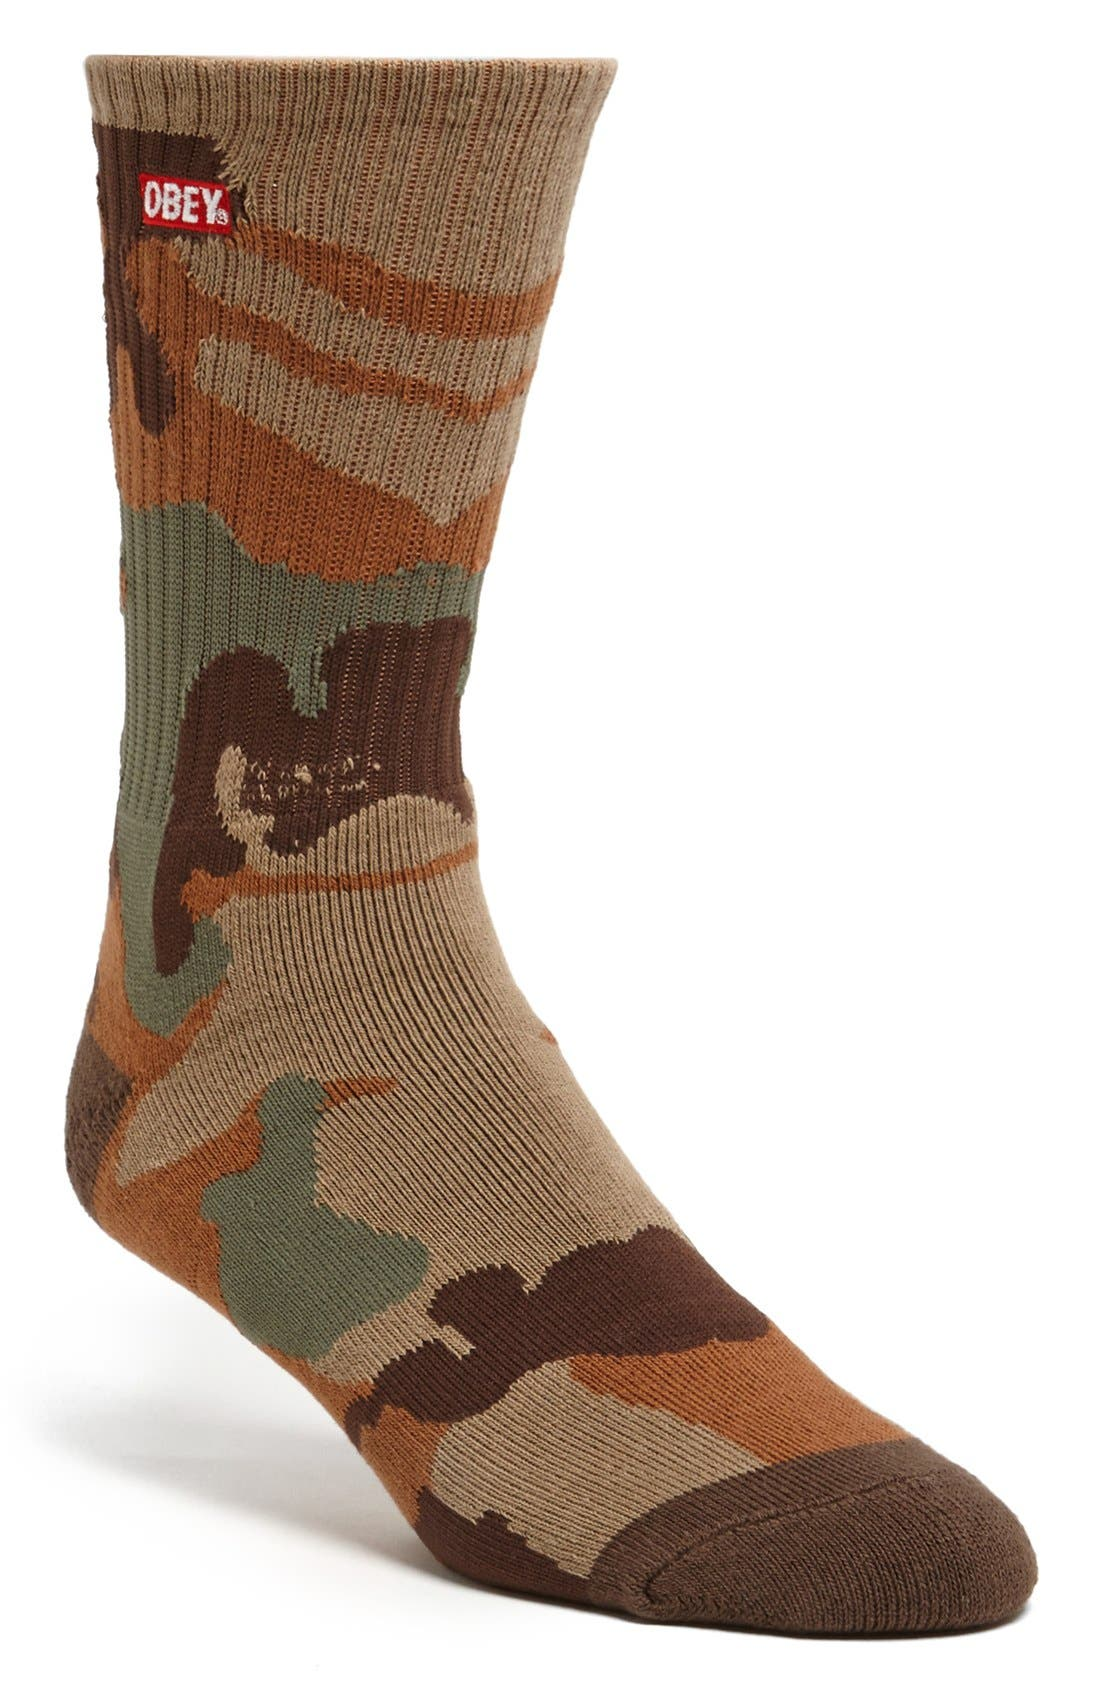 Alternate Image 1 Selected - Obey 'Quality Dissent' Socks